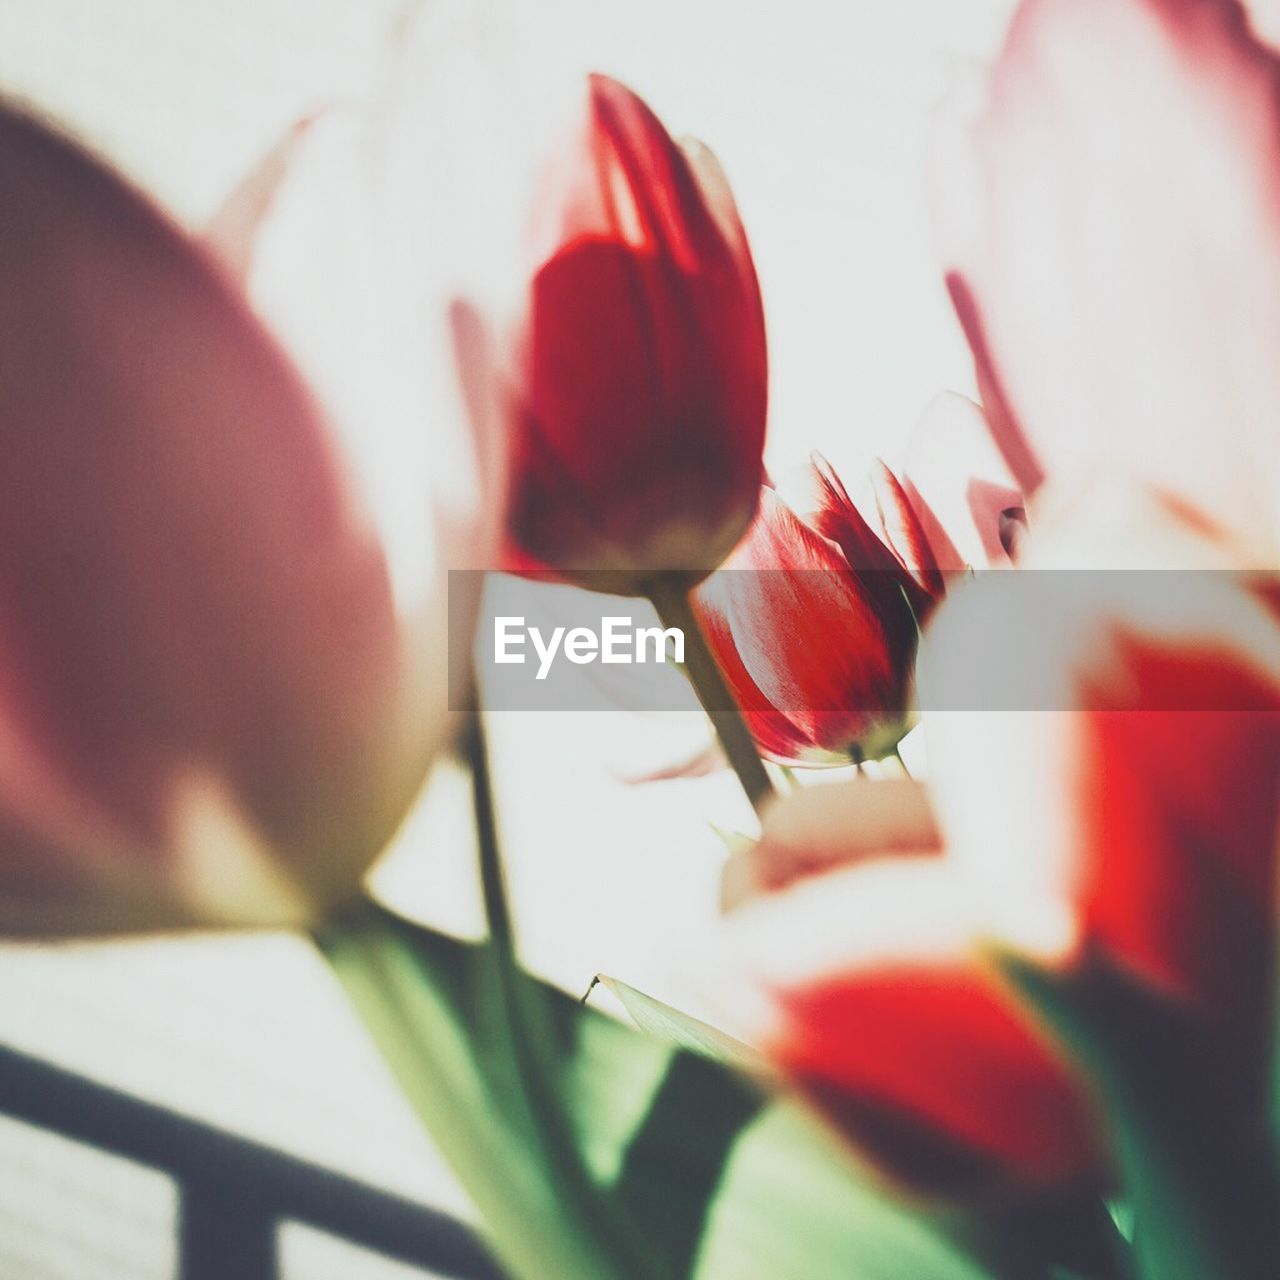 flower, petal, selective focus, fragility, growth, beauty in nature, freshness, nature, plant, red, flower head, close-up, no people, day, blooming, outdoors